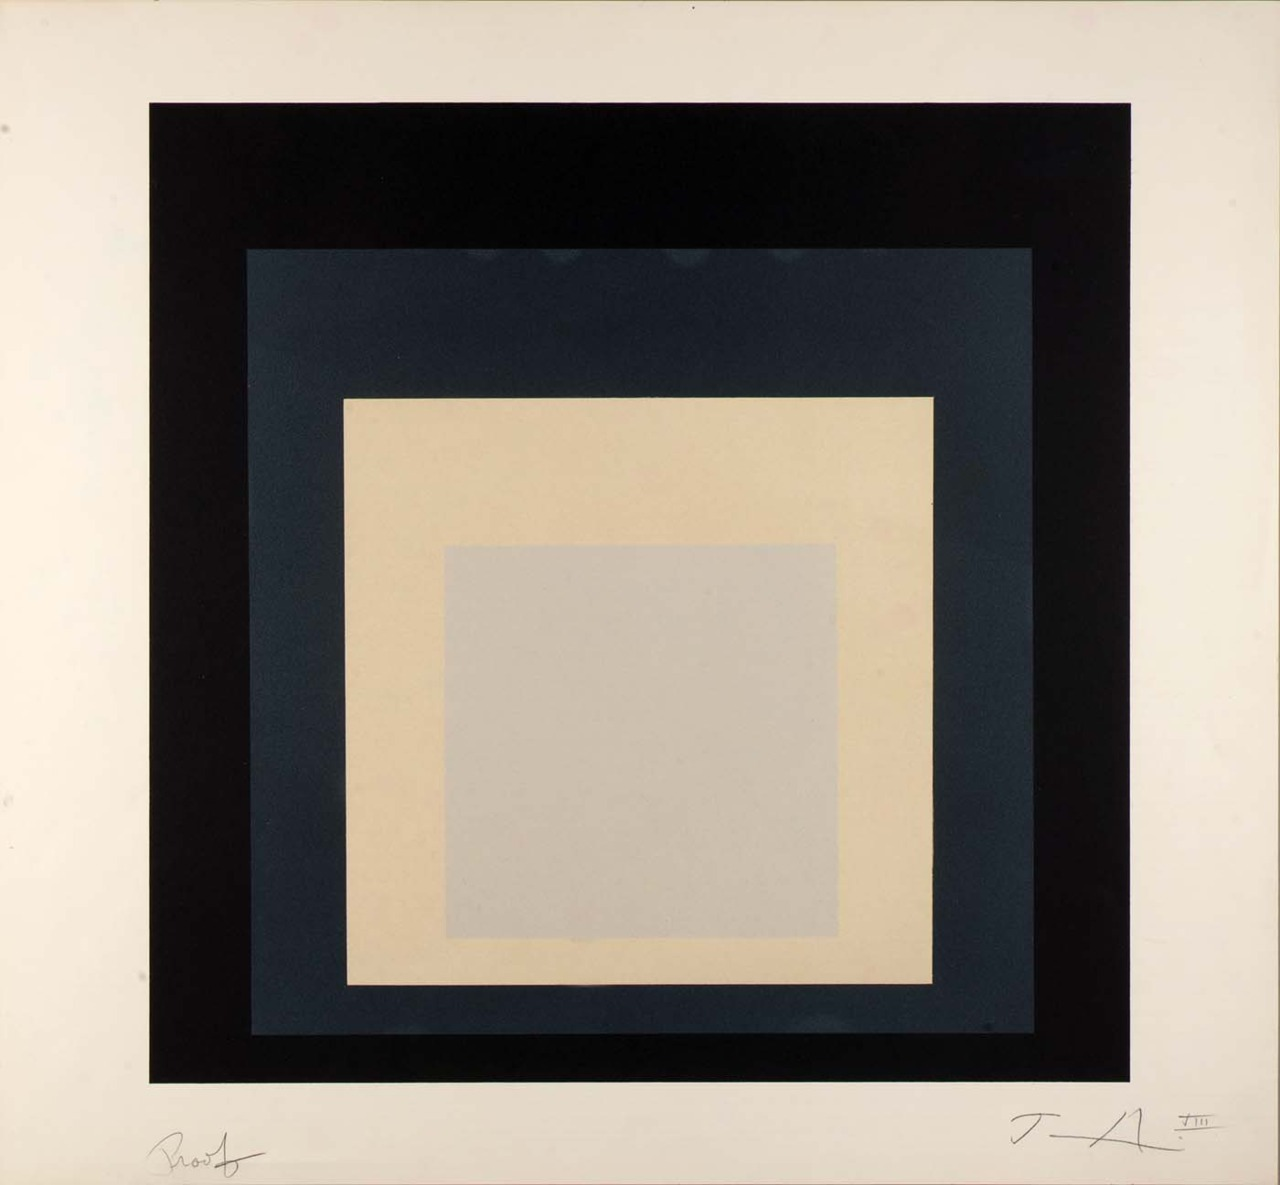 Day and Night VIII (Day and Night, suite) 1963   Josef Albers    Born: 															Bottrop, Germany 1888   Died: 															New Haven, Connecticut 1976  color lithograph on paper image:15 3/4 x 15 3/4 in. (40.0 x 40.0 cm) Smithsonian American Art Museum